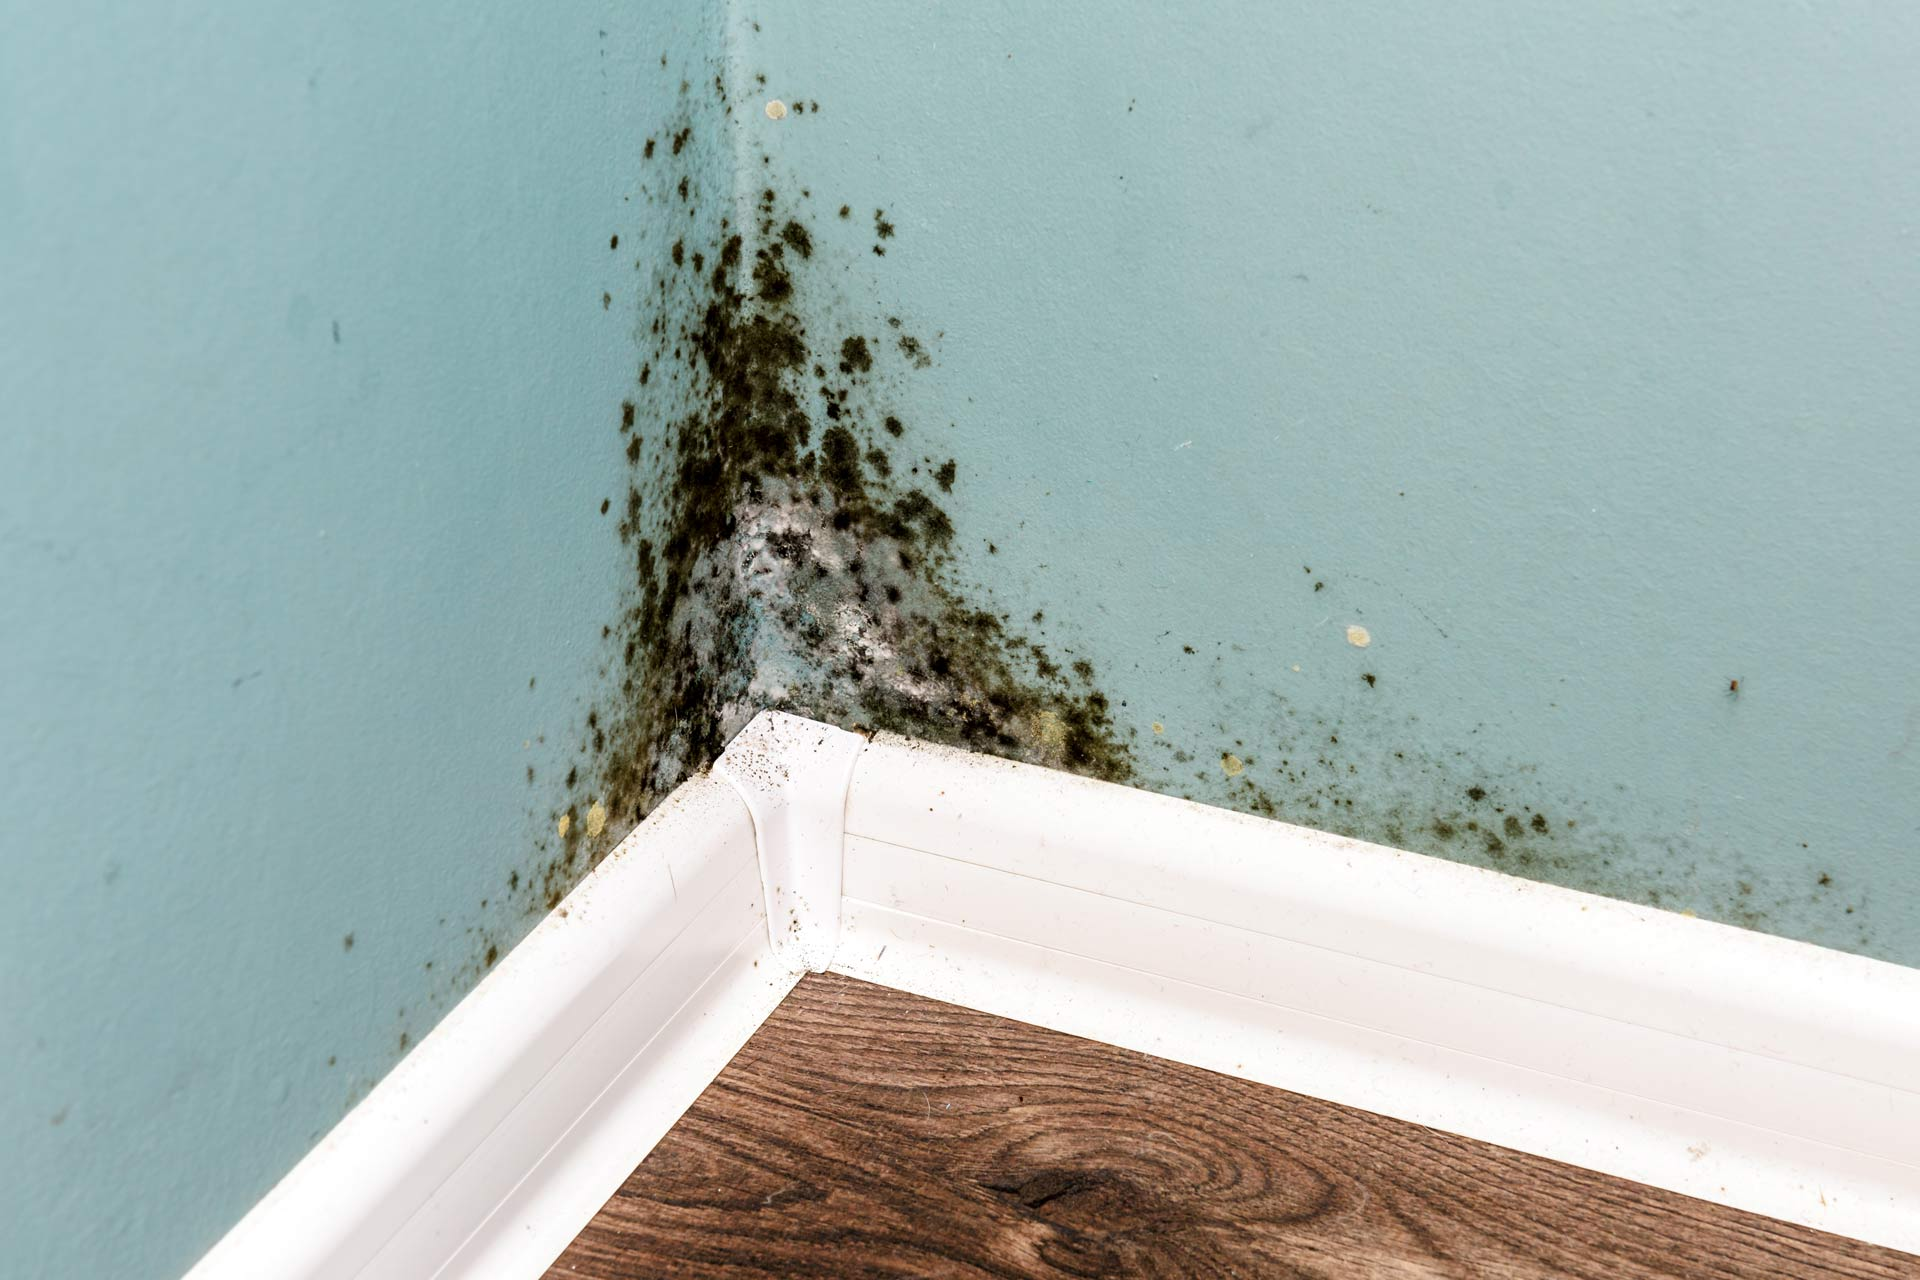 How to Deal with Mold in Your Home?